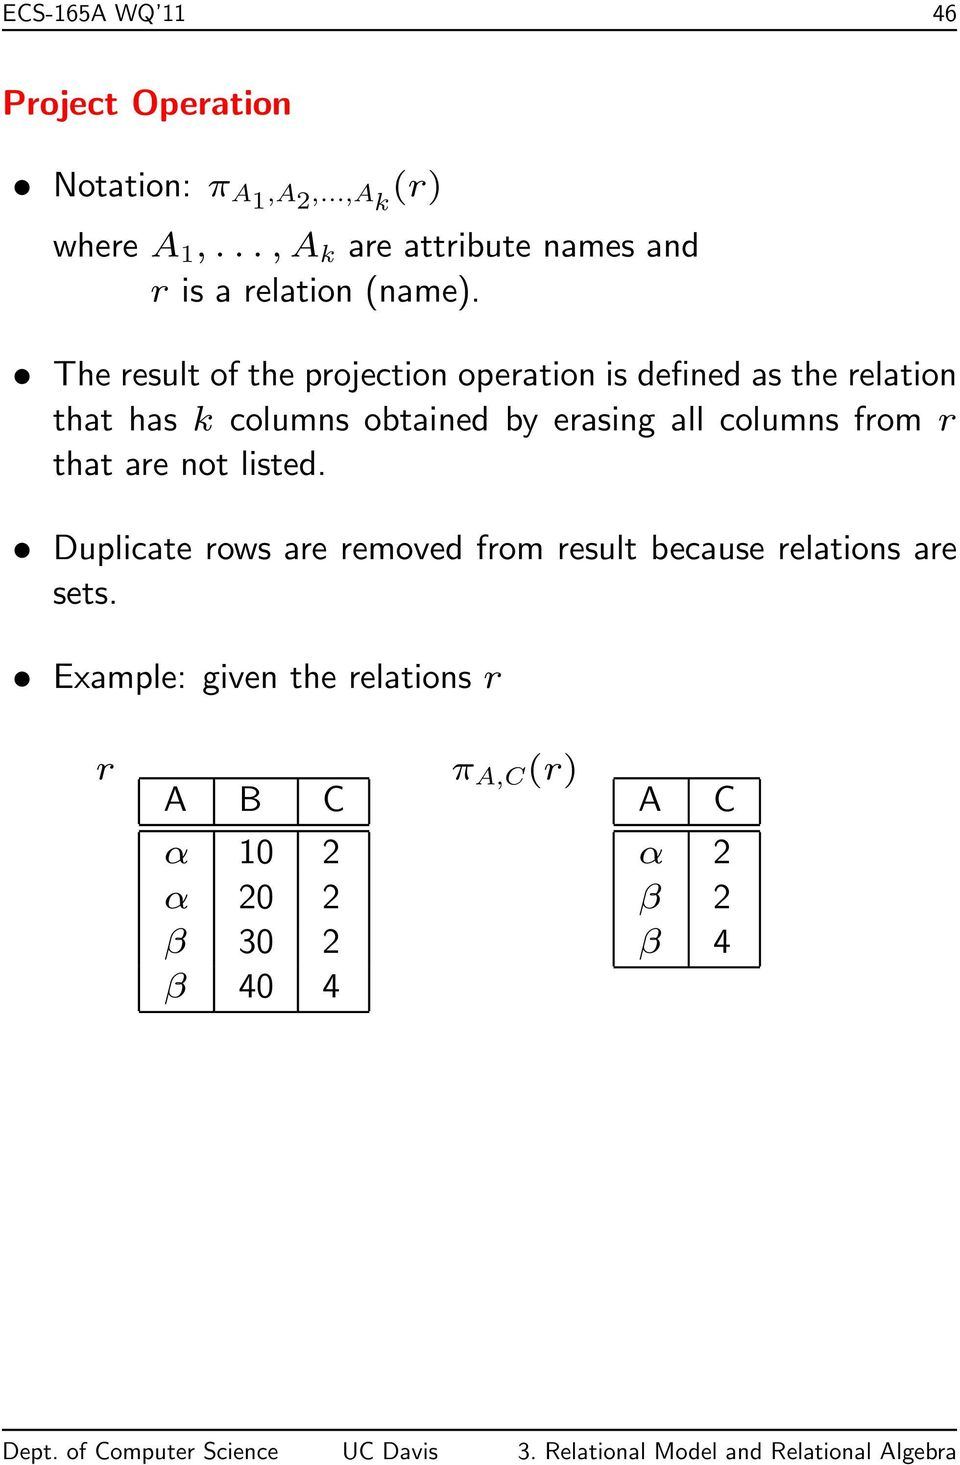 The result of the projection operation is defined as the relation that has k columns obtained by erasing all